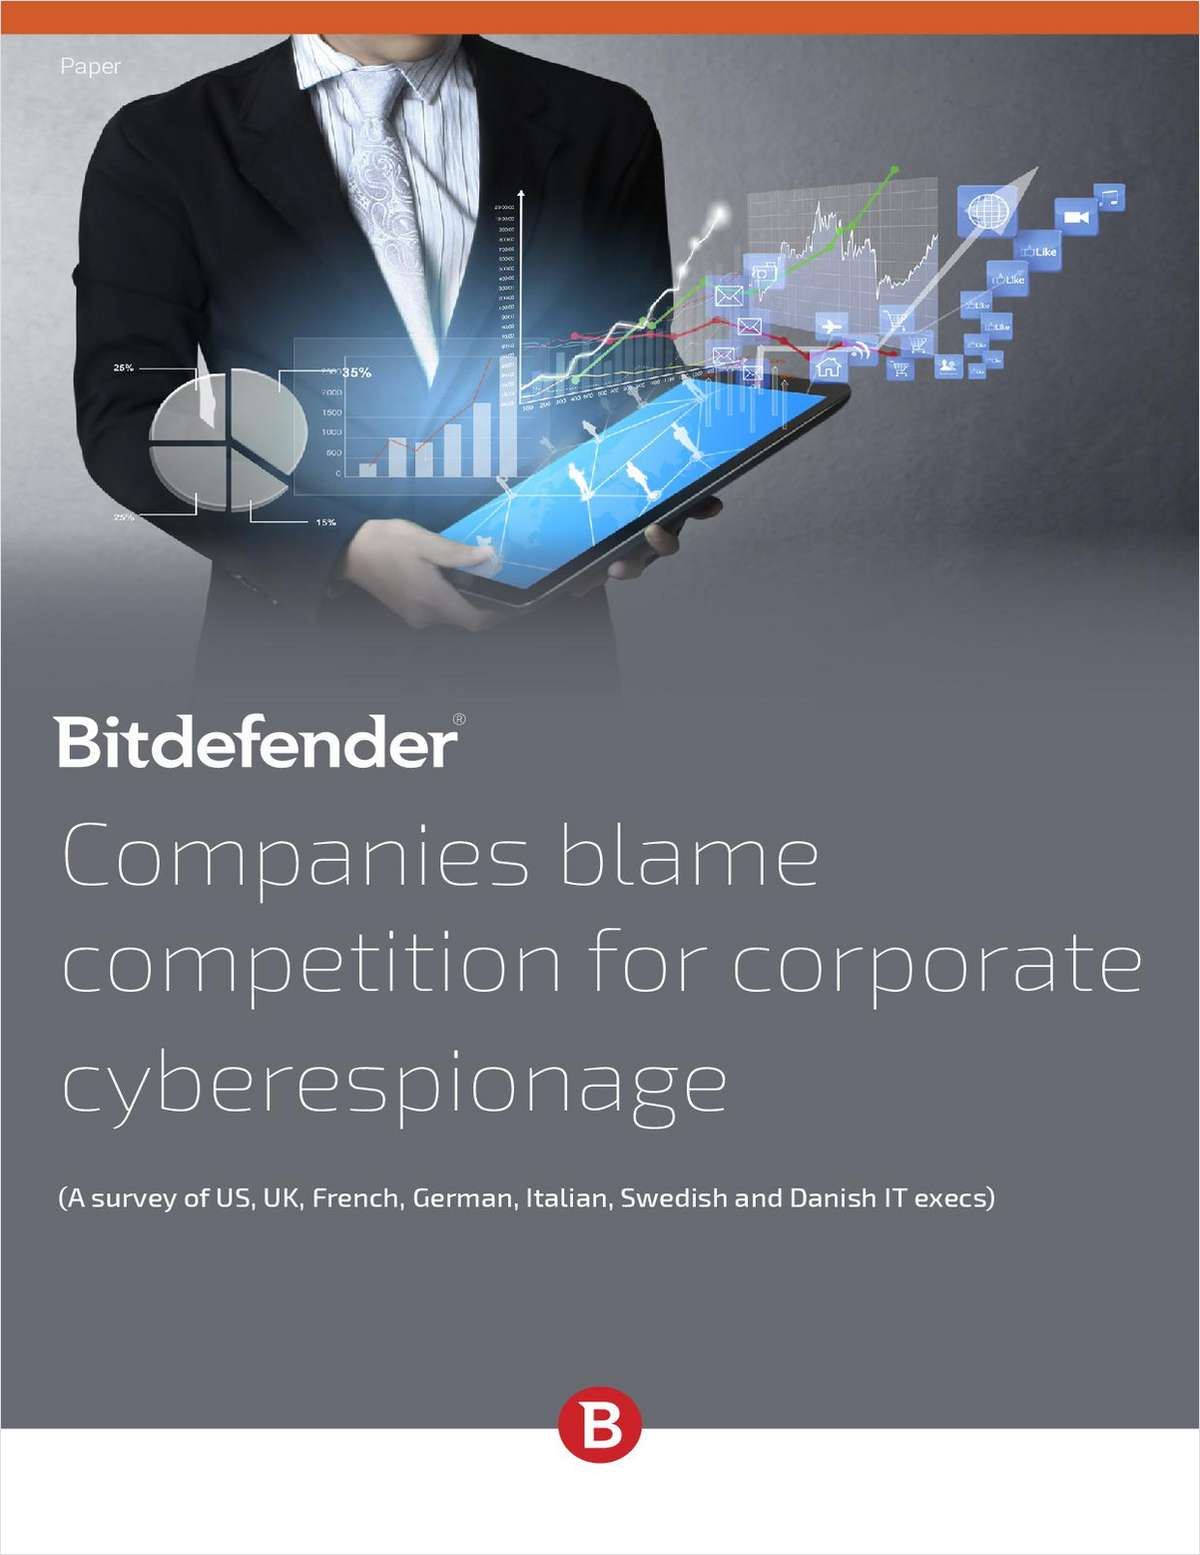 Who is to Blame for Corporate Cyberespionage?